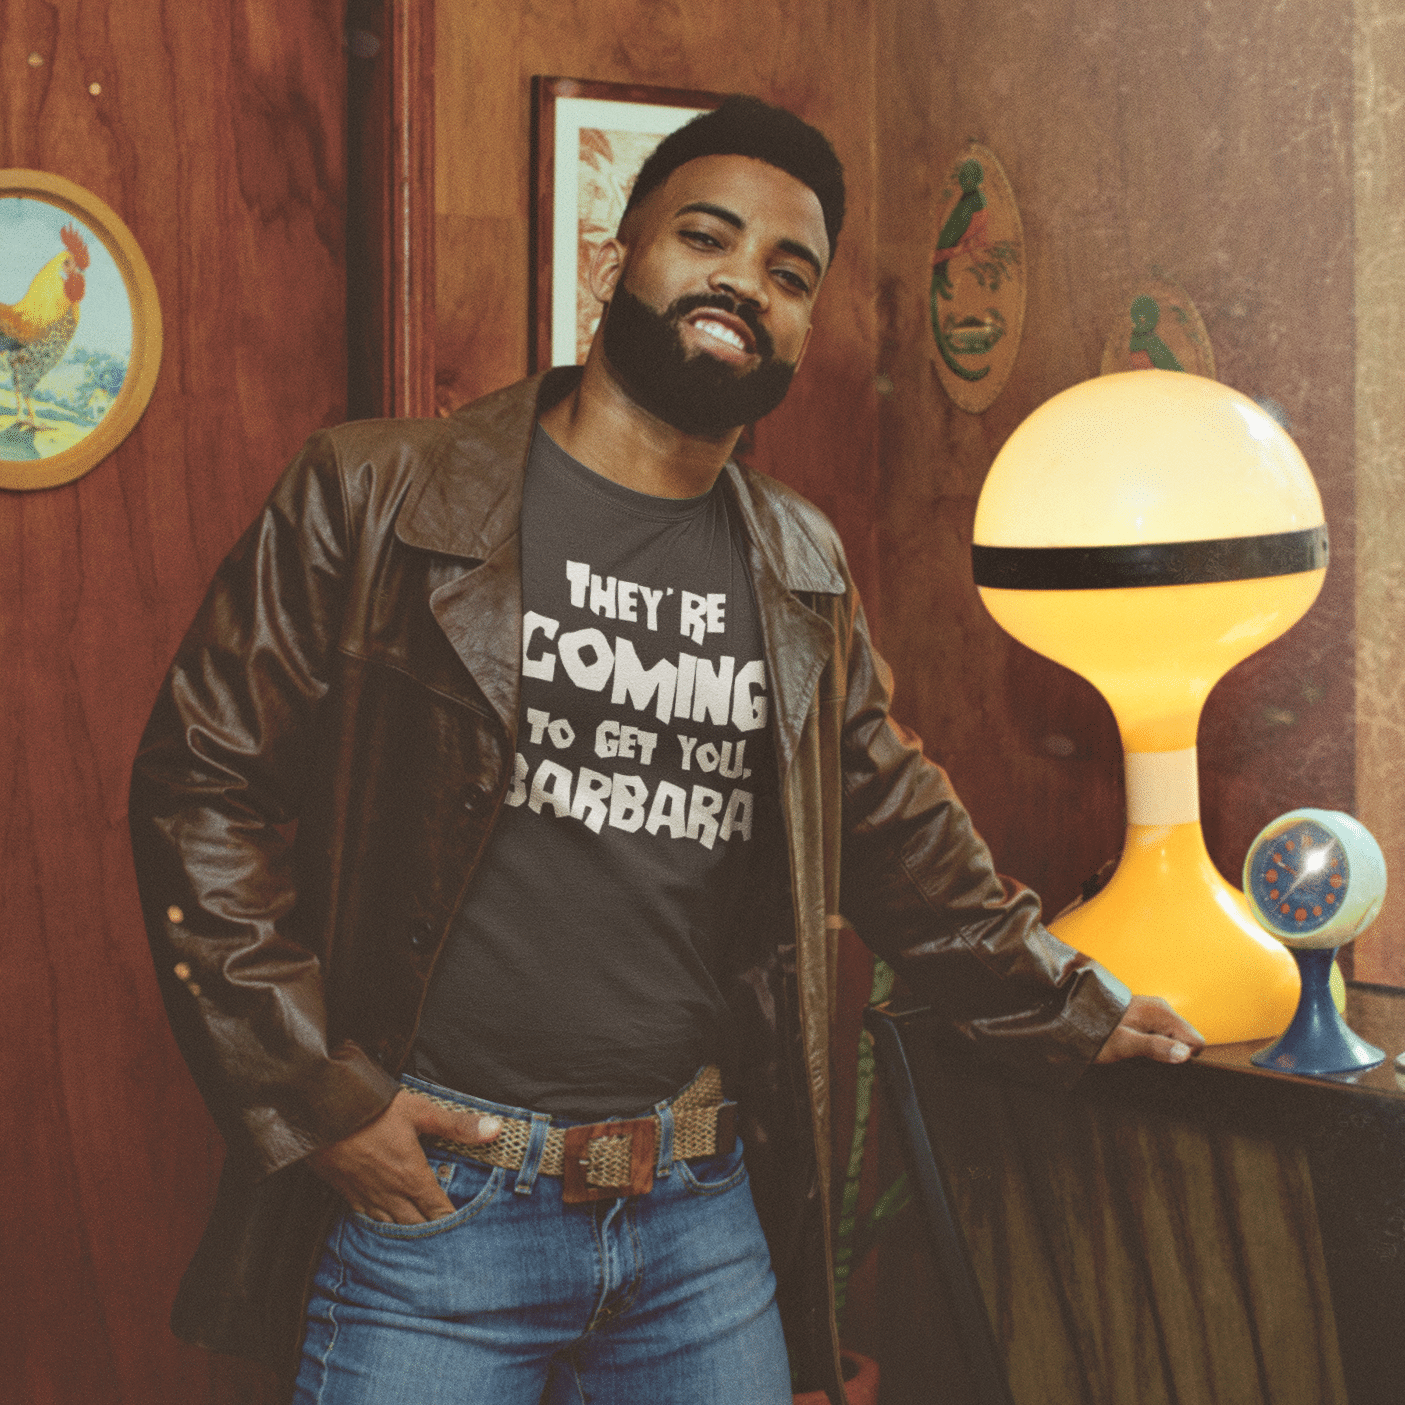 retro-mockup-of-a-man-wearing-a-70-s-style-outfit-with-a-t-shirt-m10518-1.png